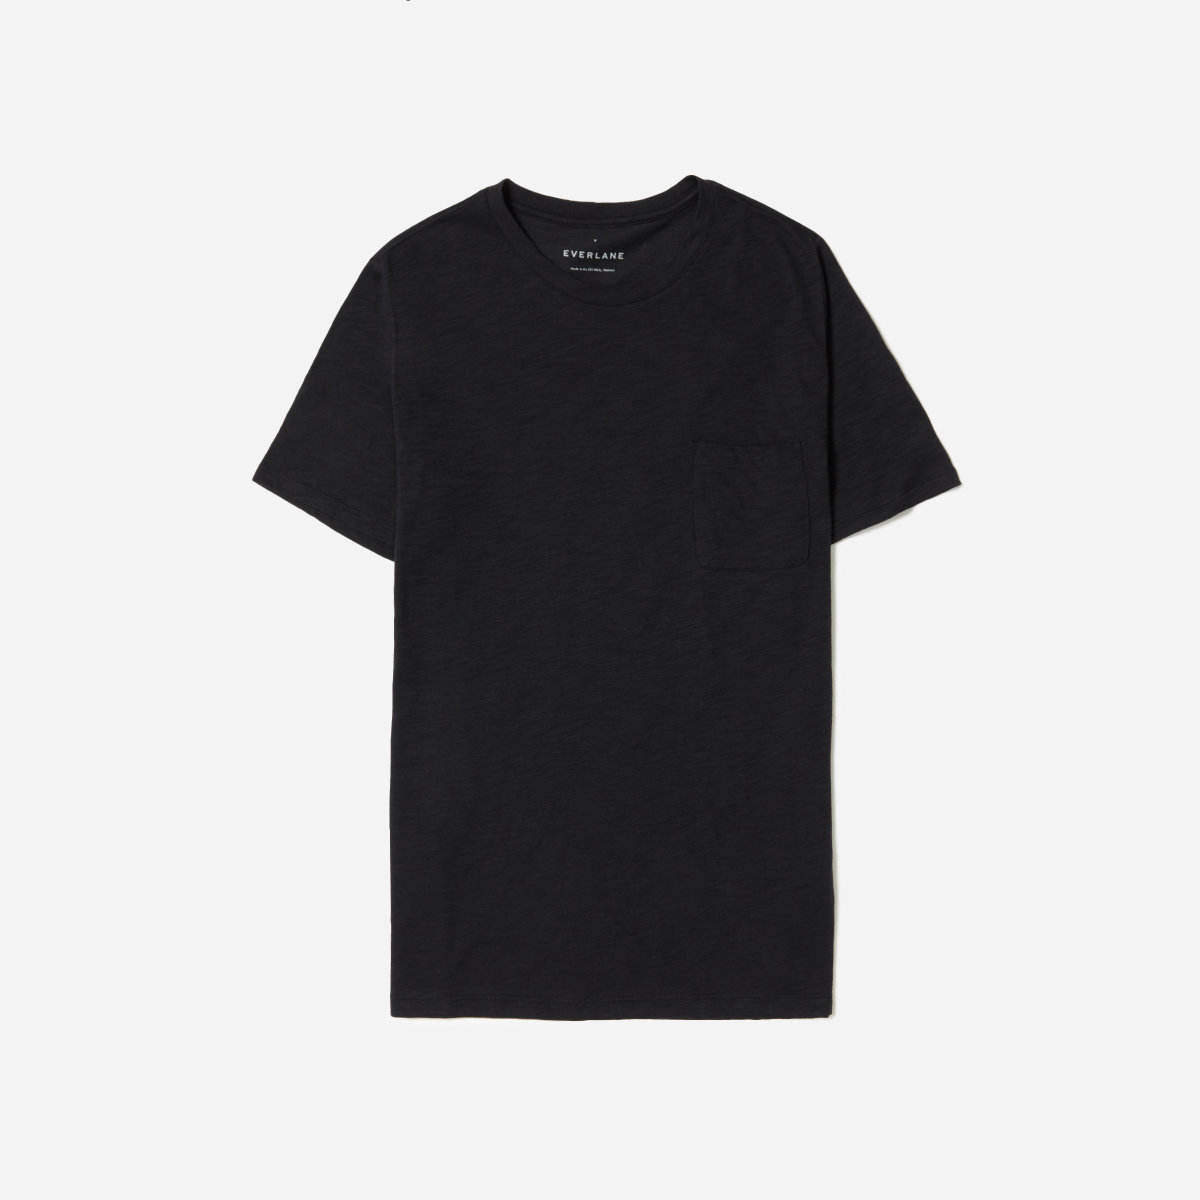 Classic Pocket T - Everlane | Affordable, breathable, 100% cotton. Grab one in every color and Dad will rock them all year long!